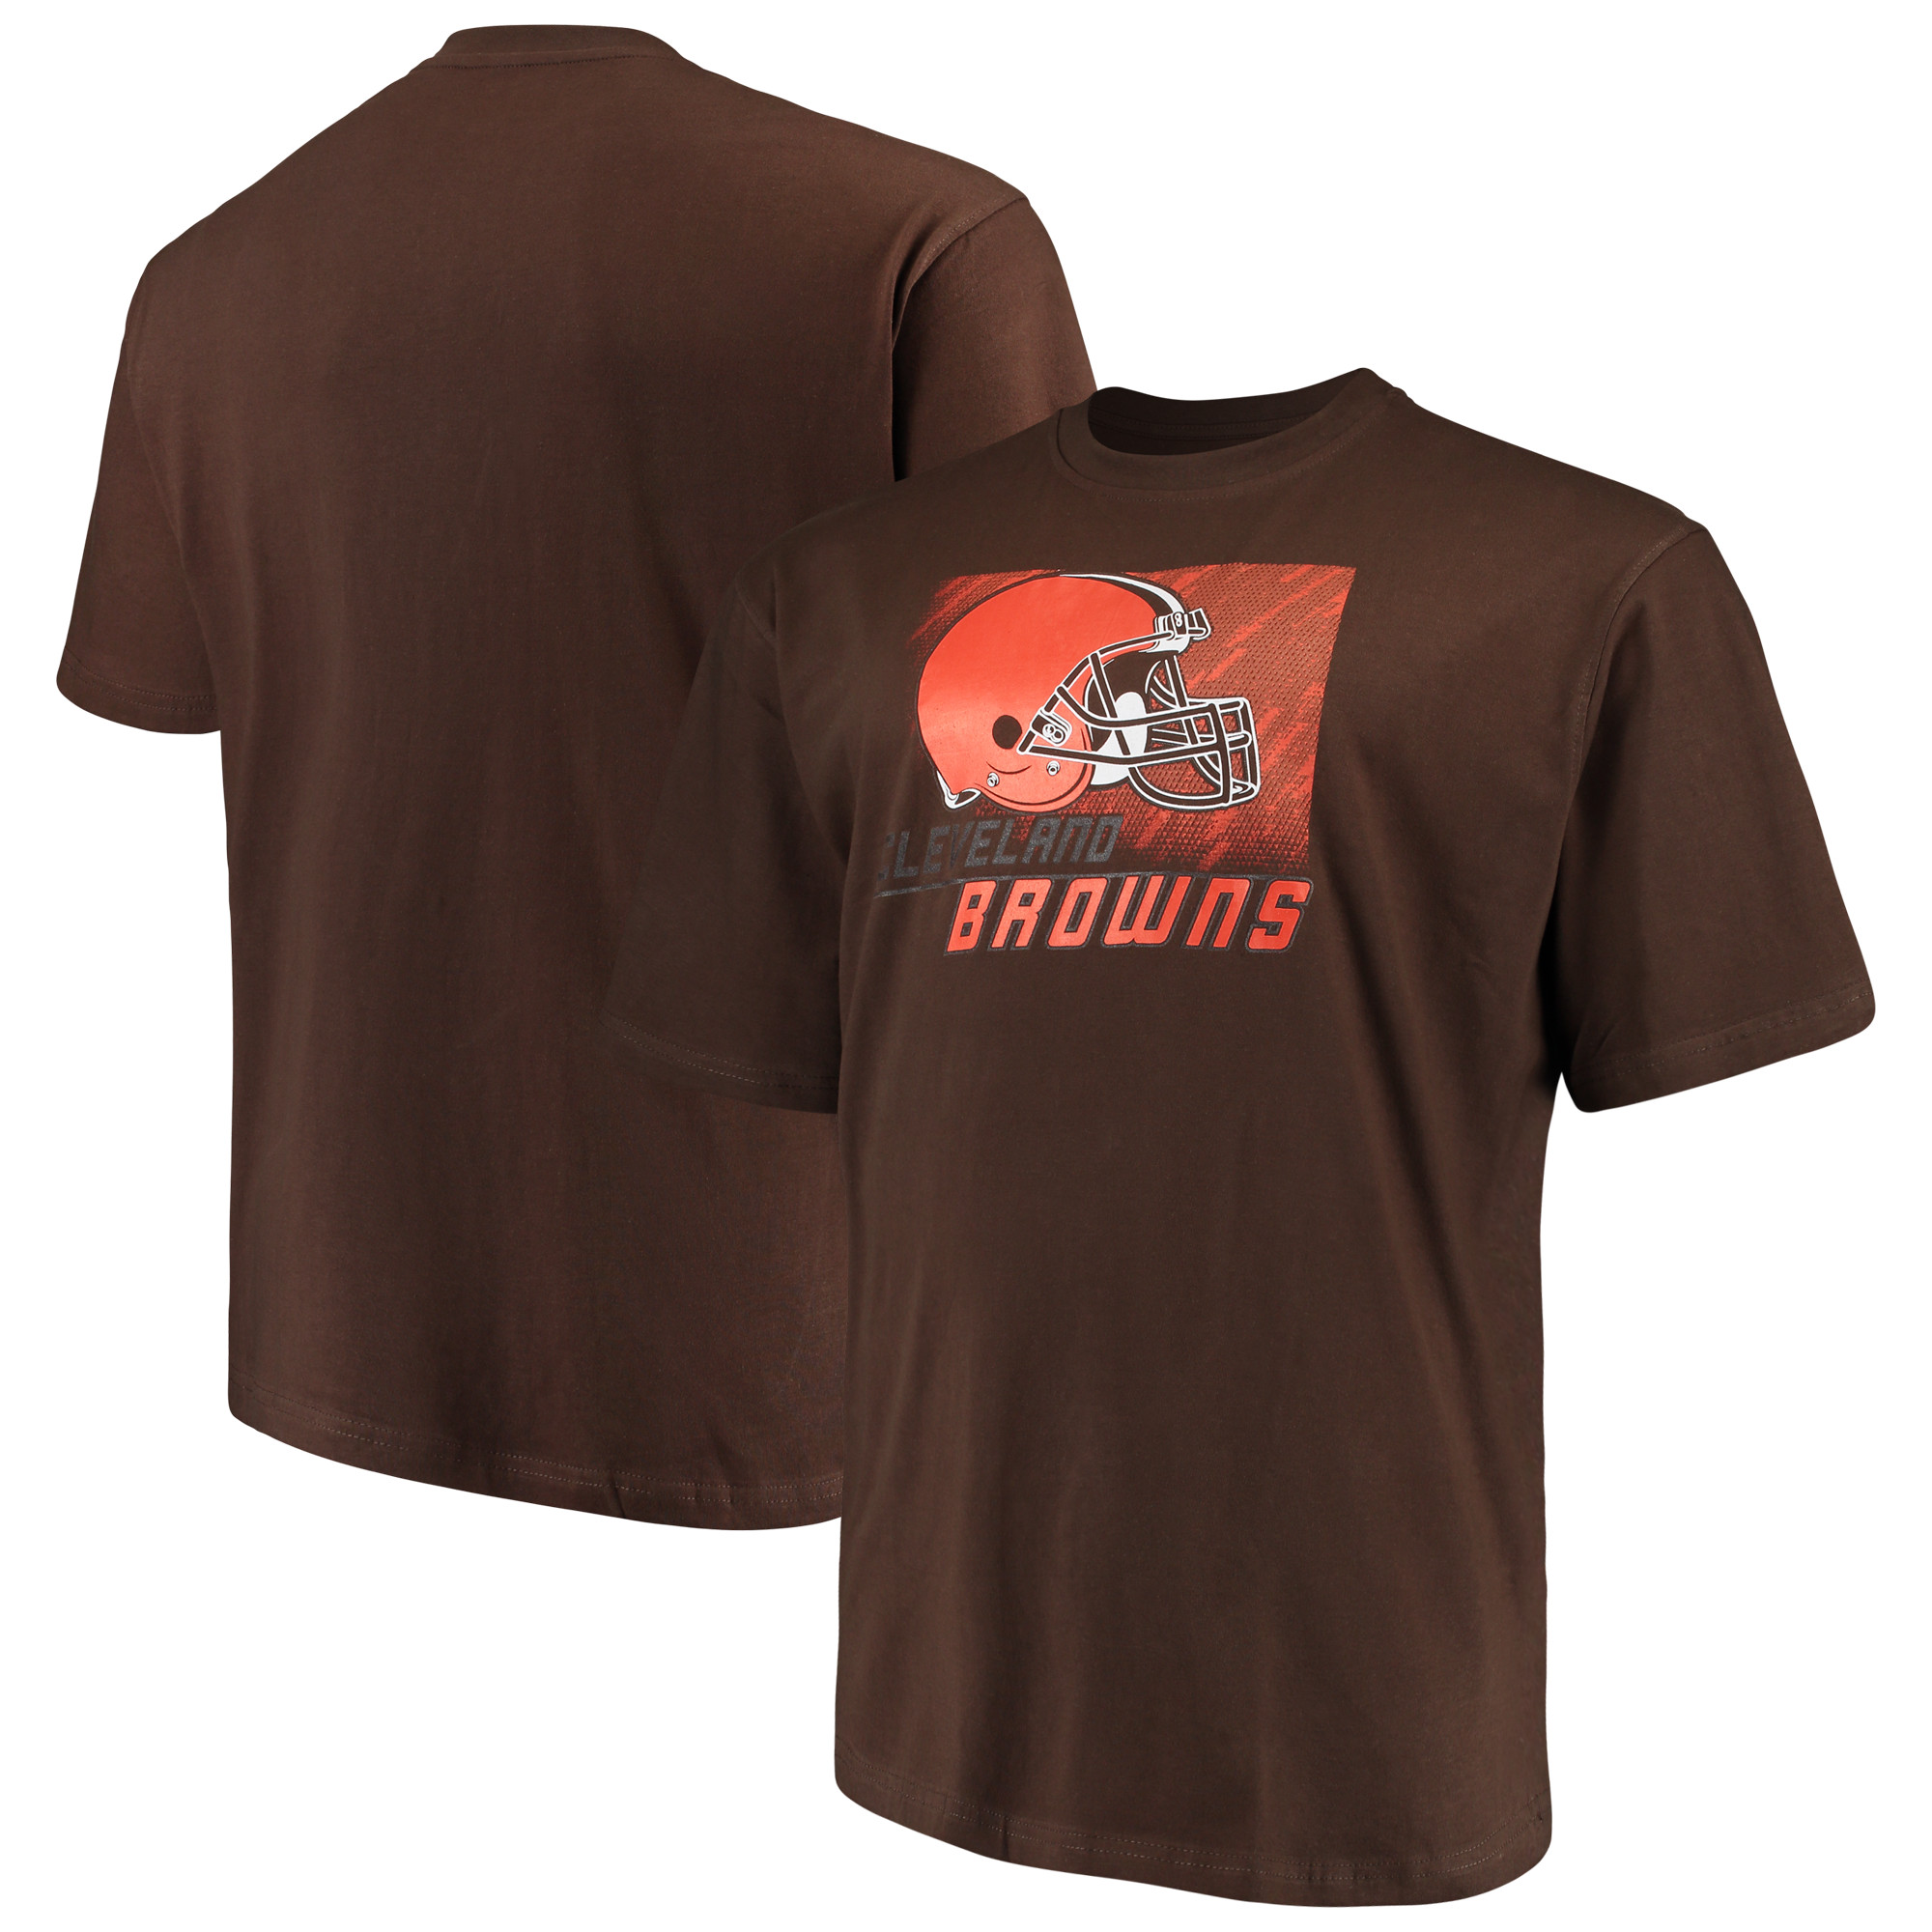 Men's Majestic Brown Cleveland Browns Big & Tall Reflective T-Shirt